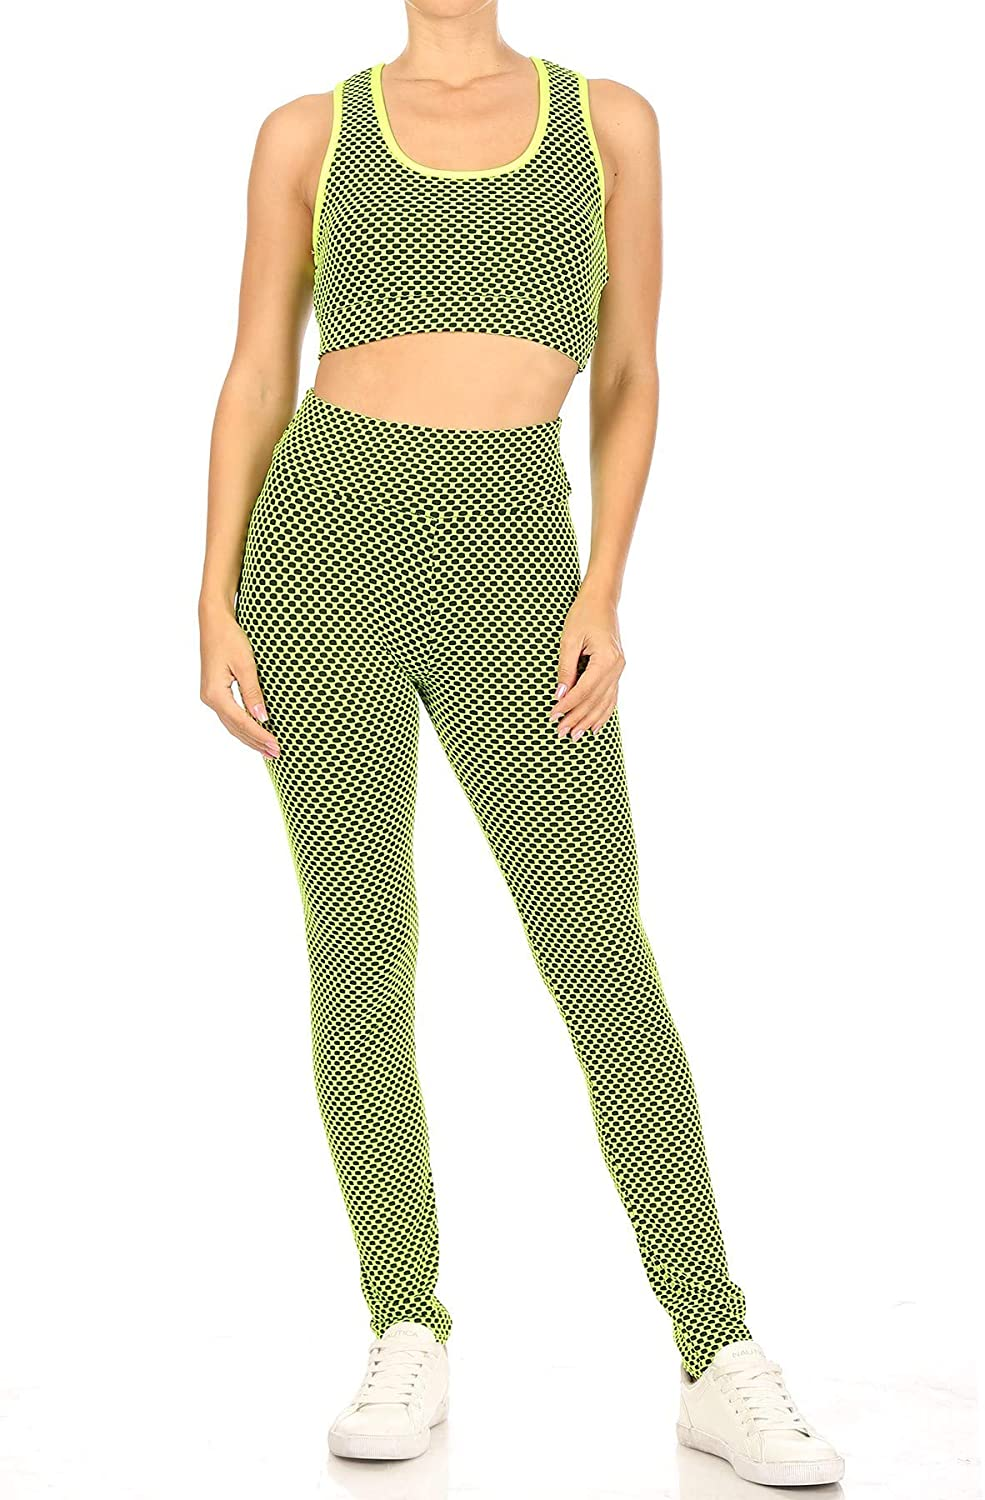 Women's Honeycomb Butt Lifted Activewear Full Length Leggings with Crop Top